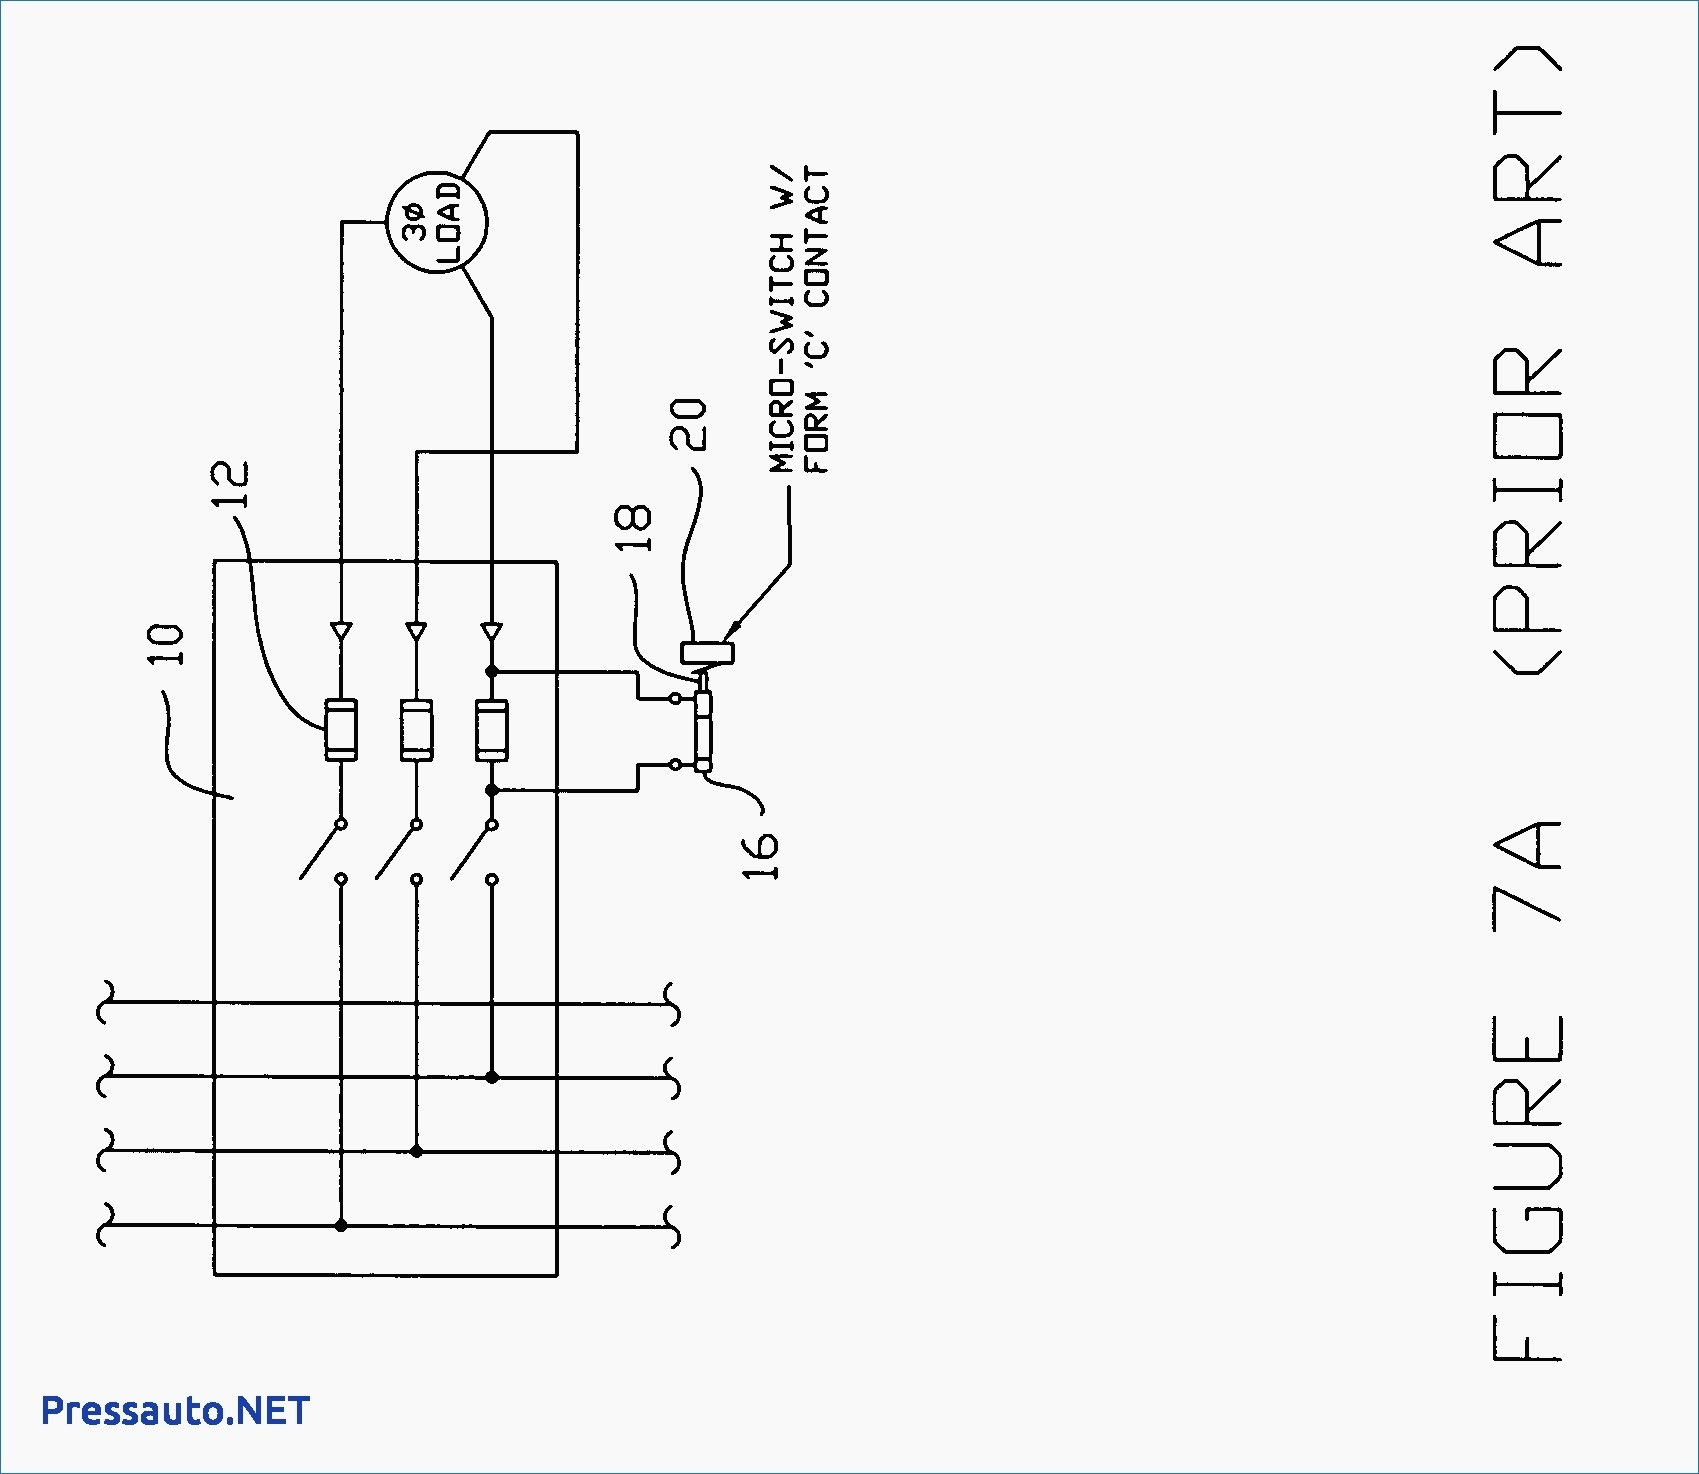 DIAGRAM] Abb Power Circuit Breaker Wiring Diagram FULL Version HD Quality Wiring  Diagram - SEARCHENGINETECHNIQUE.MAMI-WATA.FRDiagram Database - Mami Wata